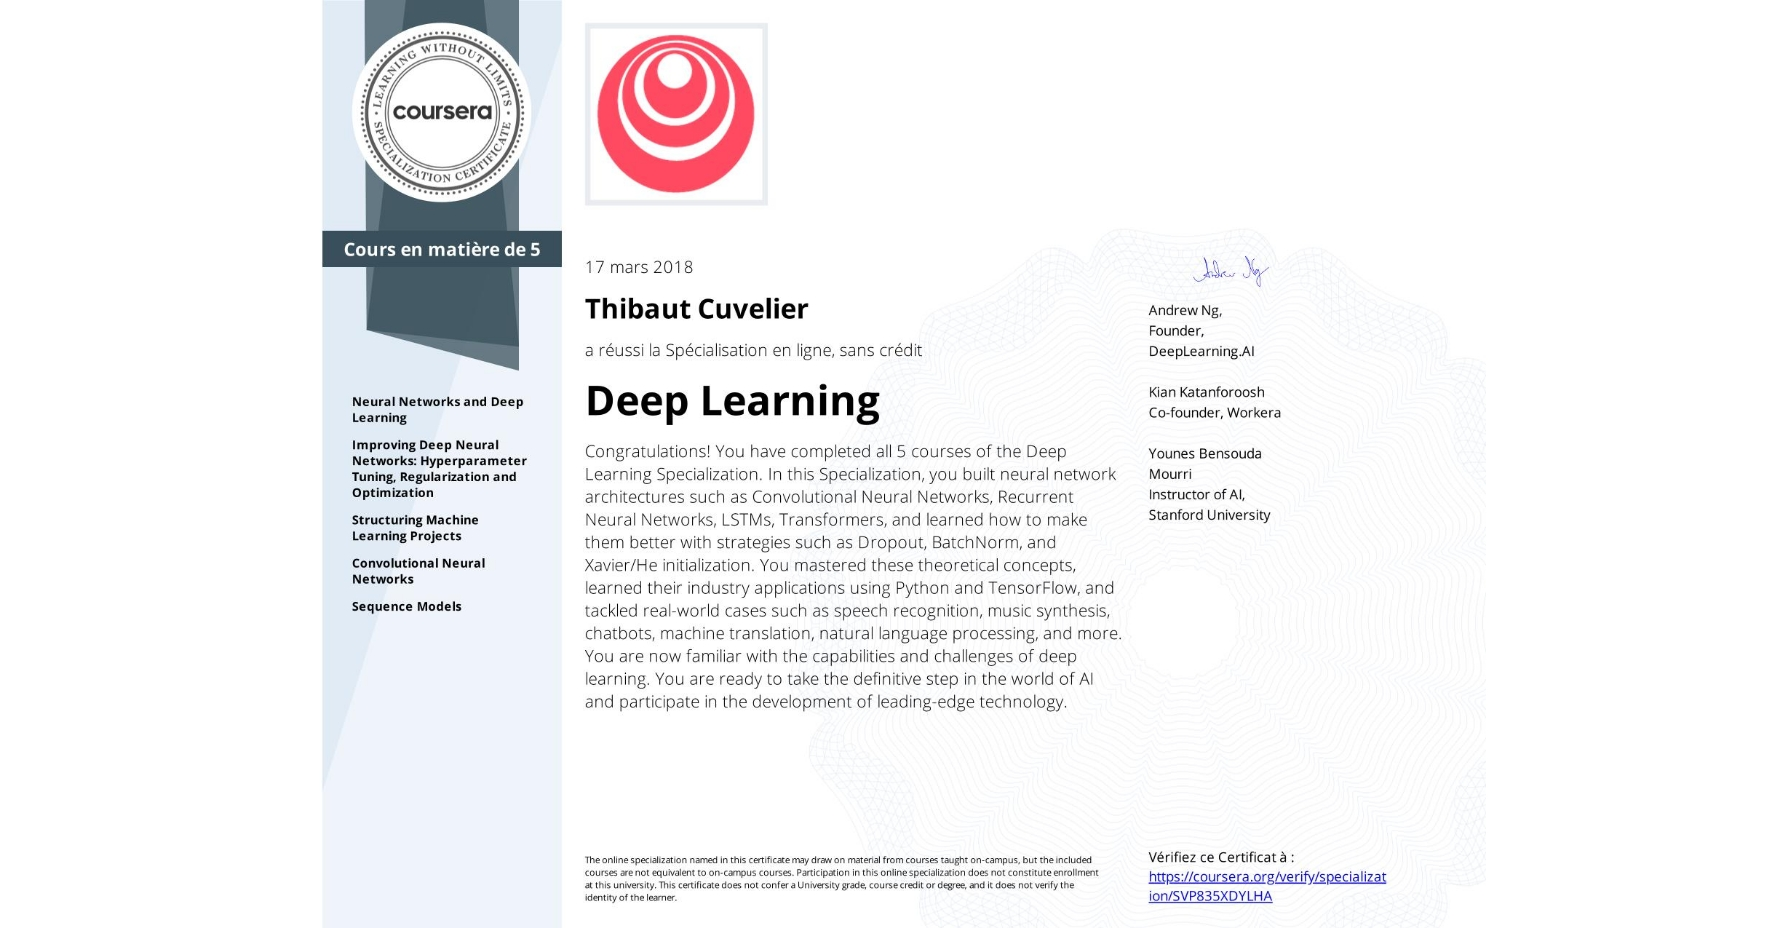 View certificate for Thibaut Cuvelier, Deep Learning, offered through Coursera. Congratulations! You have completed all 5 courses of the Deep Learning Specialization.  In this Specialization, you built neural network architectures such as Convolutional Neural Networks, Recurrent Neural Networks, LSTMs, Transformers, and learned how to make them better with strategies such as Dropout, BatchNorm, and Xavier/He initialization. You mastered these theoretical concepts, learned their industry applications using Python and TensorFlow, and tackled real-world cases such as speech recognition, music synthesis, chatbots, machine translation, natural language processing, and more.  You are now familiar with the capabilities and challenges of deep learning. You are ready to take the definitive step in the world of AI and participate in the development of leading-edge technology.